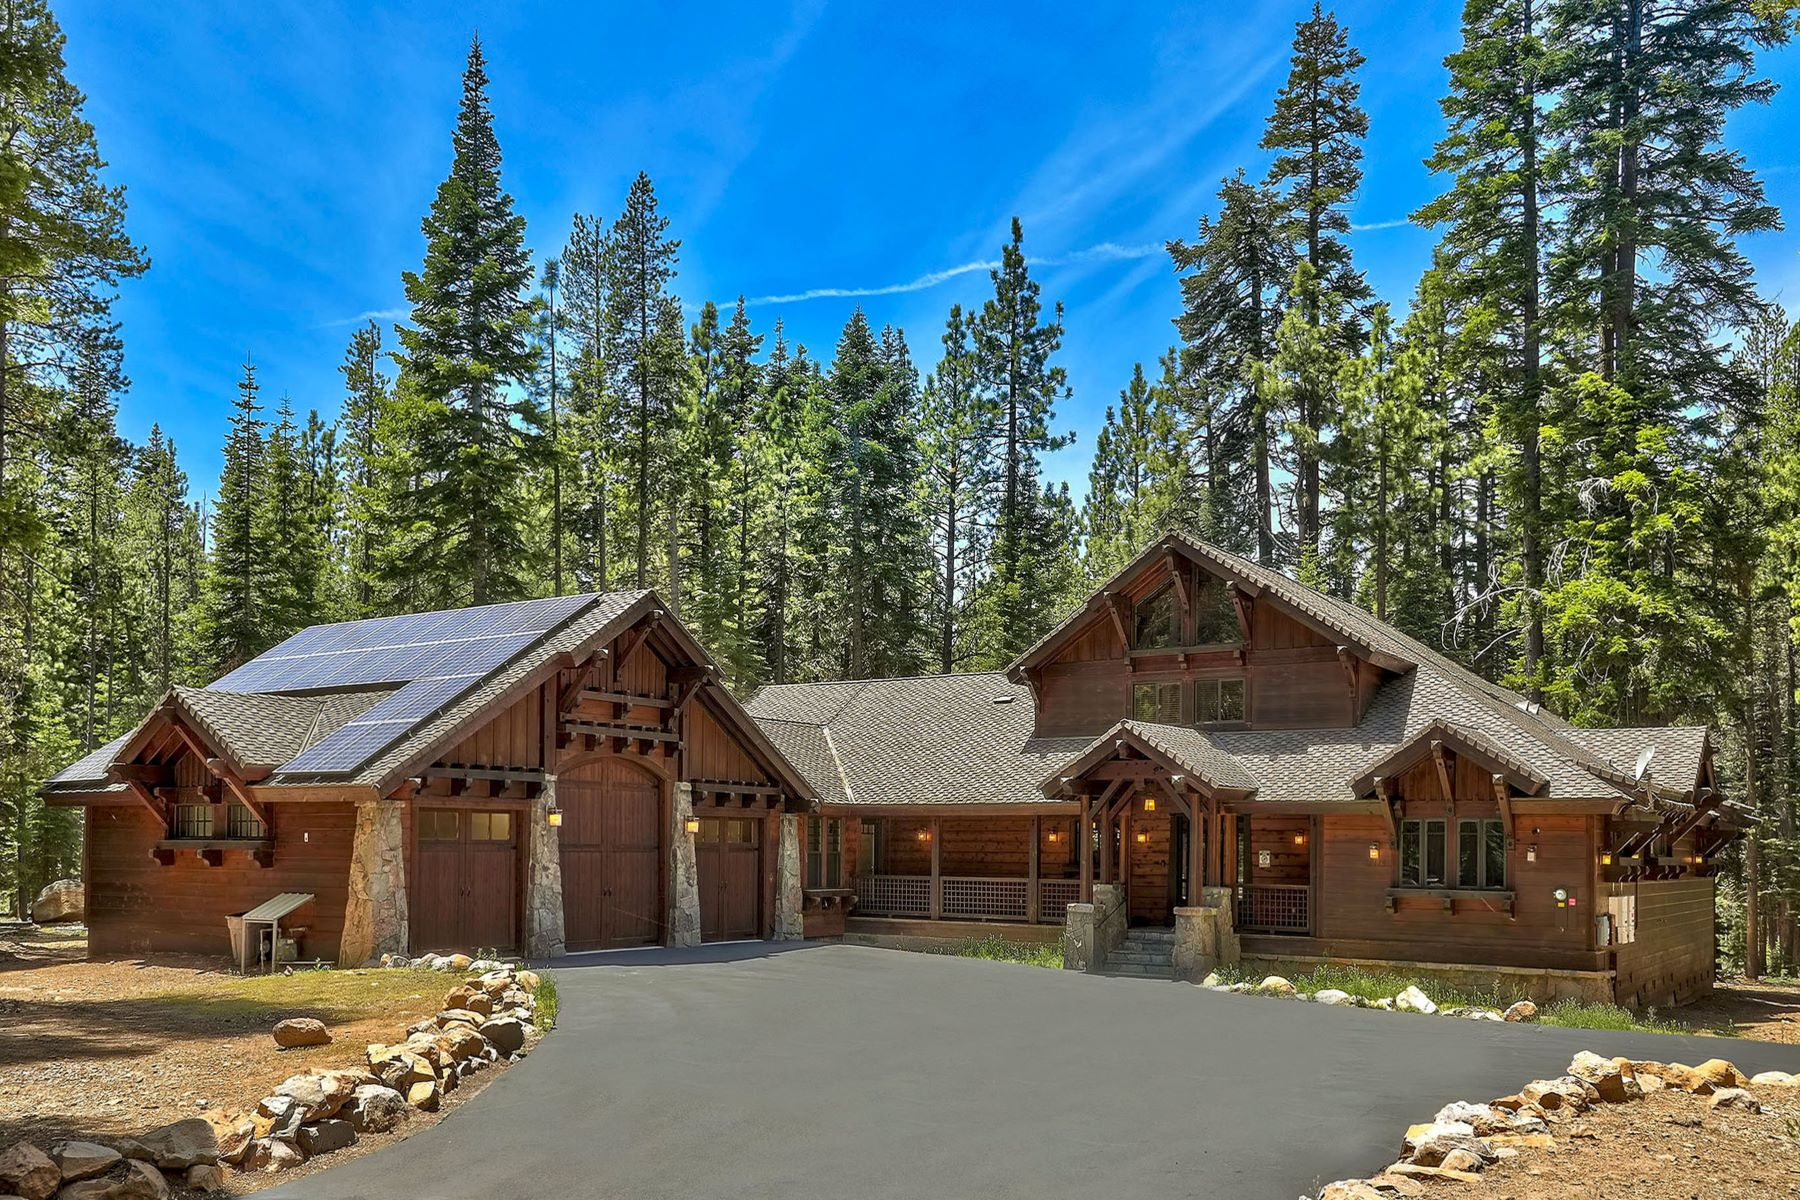 Property for Active at 4 Bed 3 Bath Home on 10.98 Acres 12115 Oslo Drive Truckee, California 96161 United States